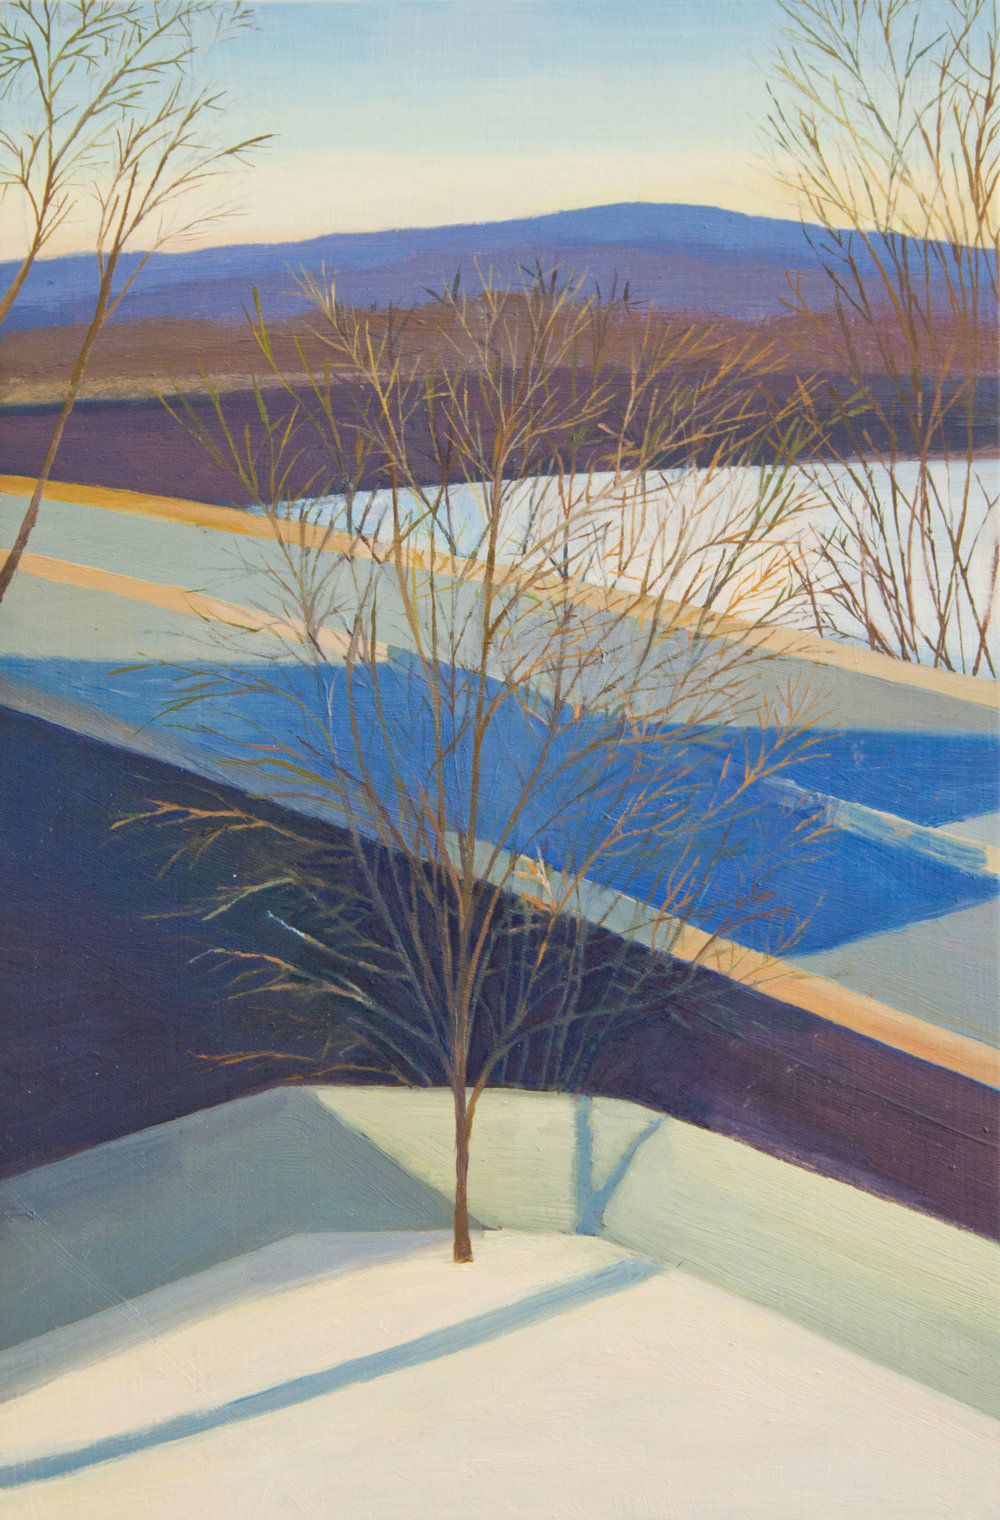 Snow Shadow, Oil on panel, 15 x 10 inches, 2015